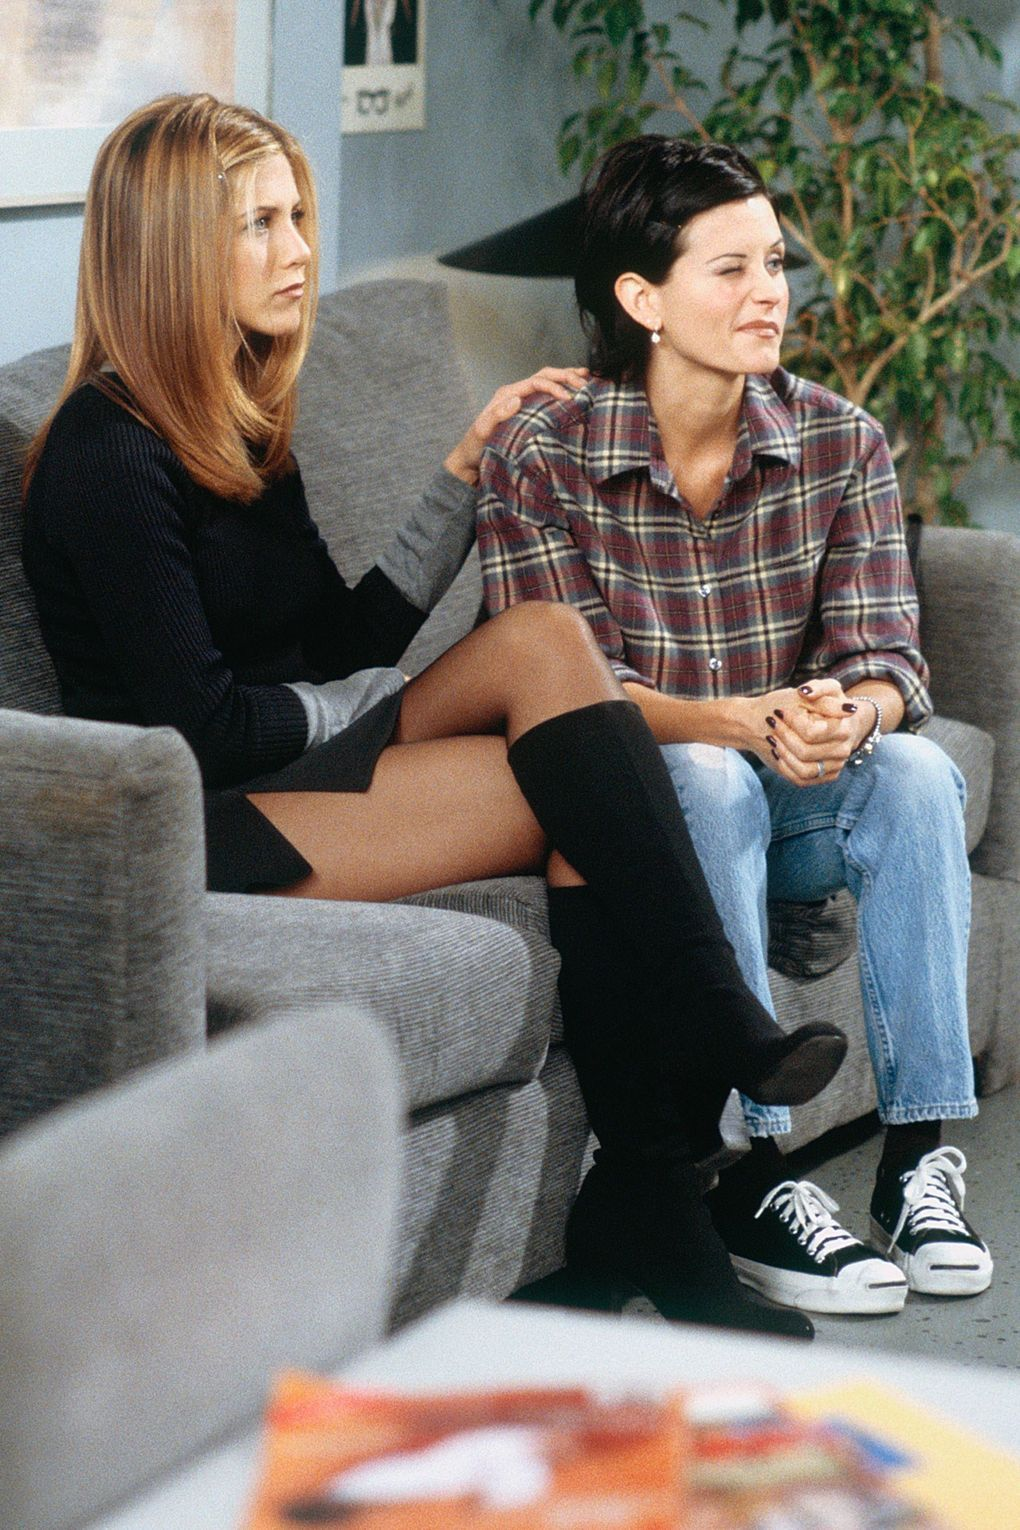 13 times Rachel, Monica & Phoebe wore something we'd wear today #fashioninthe90s